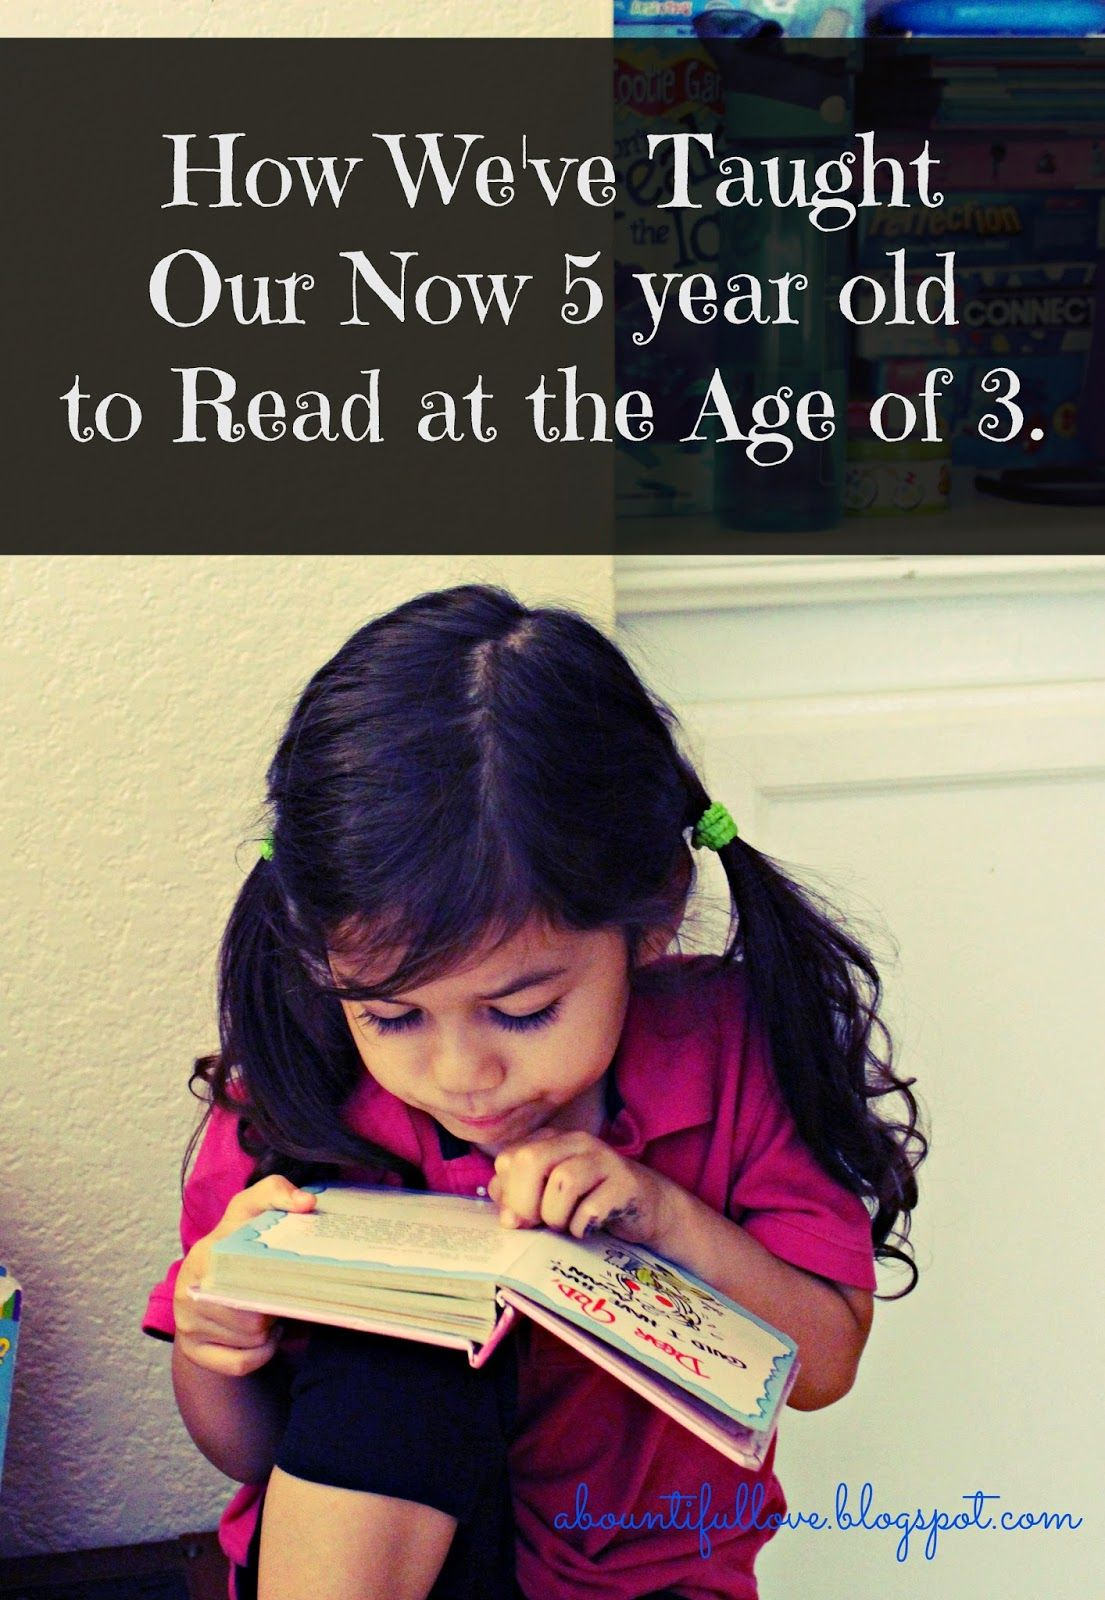 How We Ve Taught Our Now 5 Year Old To Read At The Age Of 3 Activities For 5 Year Olds Activities For 6 Year Olds 3 Year Old Activities How can i help my year old read